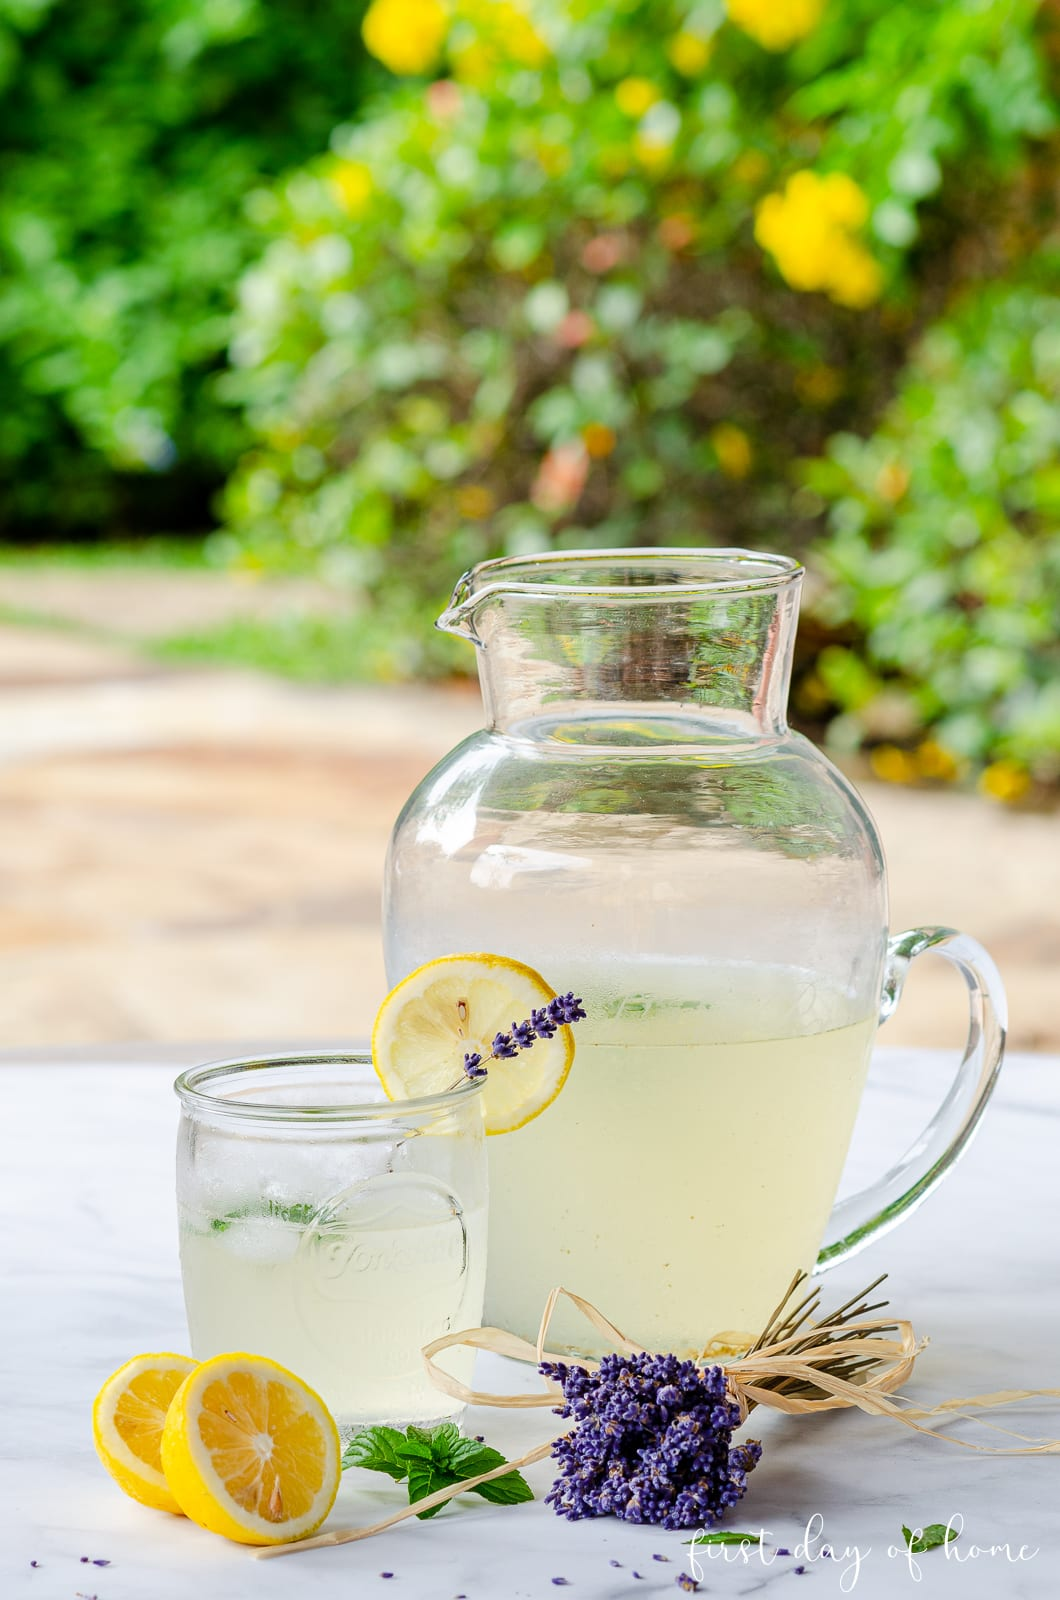 Lavender lemonade in pitcher and garnished with dried lavender stems and lemon slices with mint sprigs